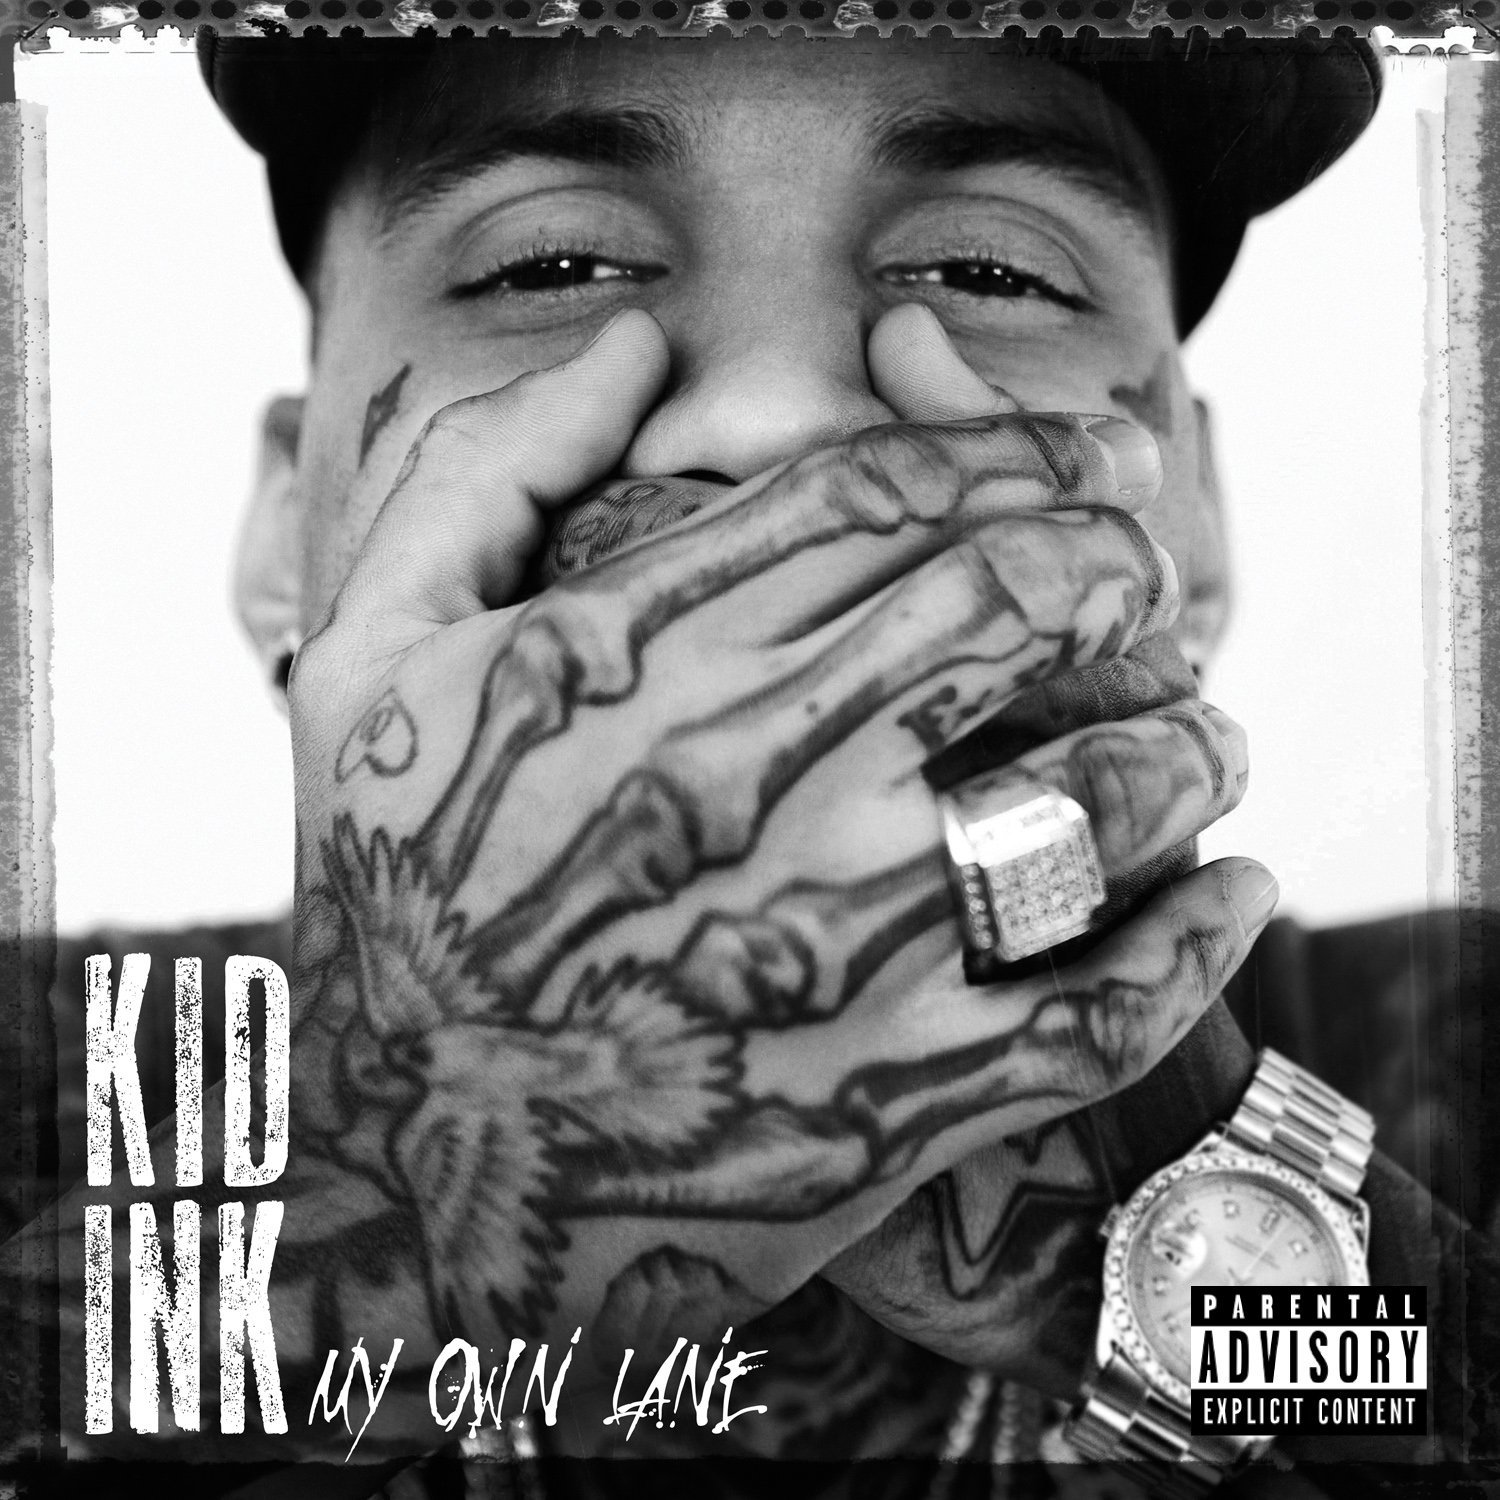 download-kid-ink-my-own-lane-2013-full-album